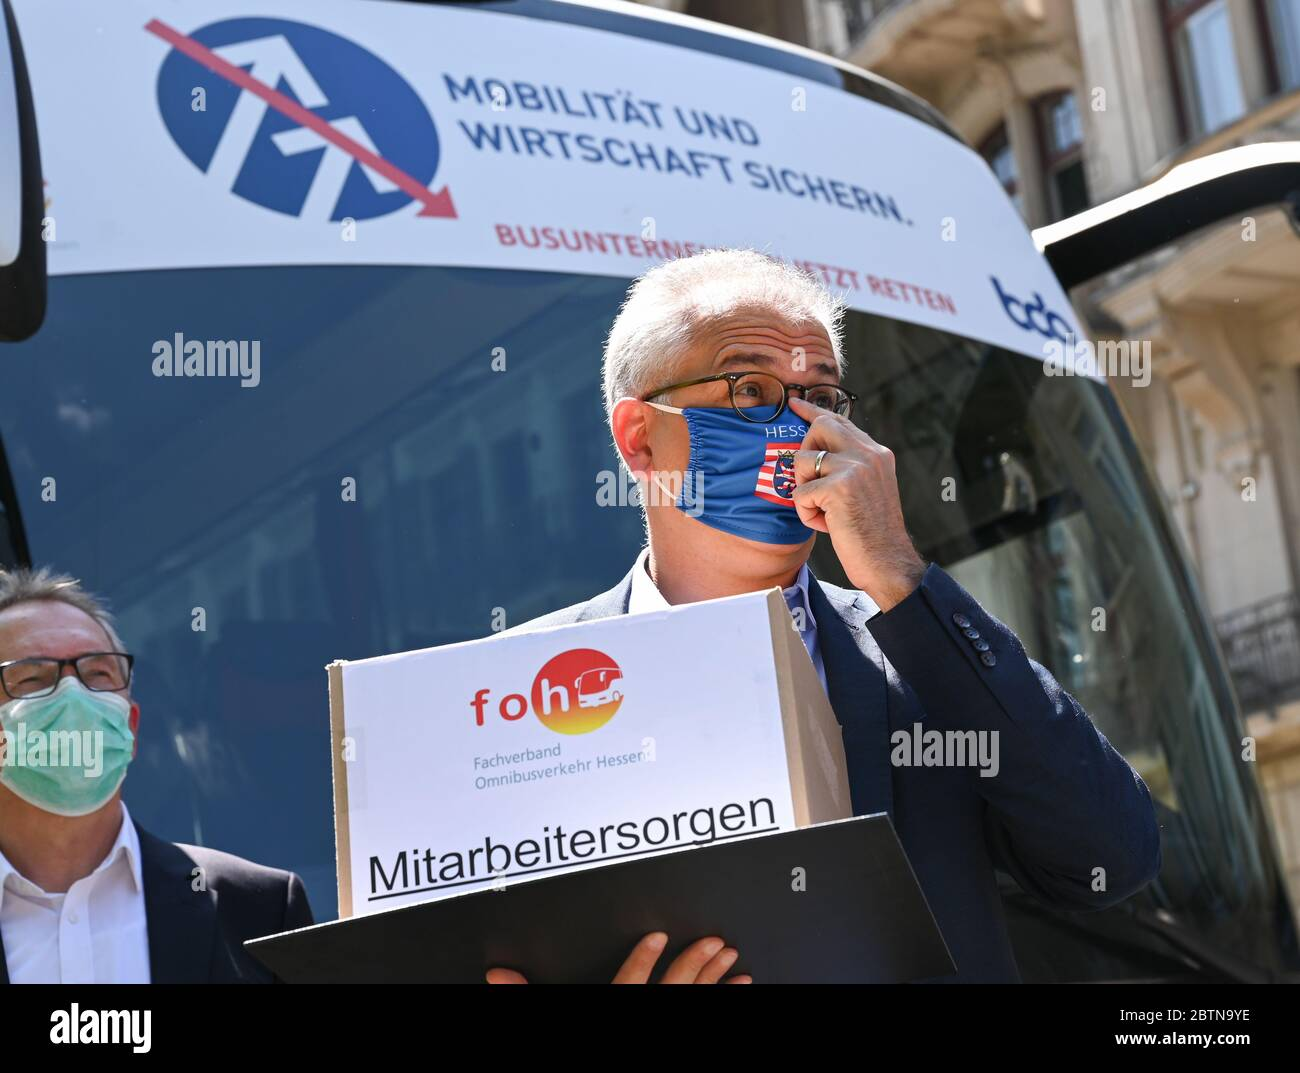 """Wiesbaden, Germany. 27th May, 2020. Tarek Al-Wazir (Bündnis 90/Die Grünen), Minister of Economics of the State of Hesse, stands in front of a coach with the inscription """"Sichern Mobilität und Witschaft sichern. Bus companies now save"""". The bus companies are calling for immediate aid because of the Corona crisis. About 100 buses from all over Hesse took part in the event. Credit: Arne Dedert/dpa/Alamy Live News Stock Photo"""